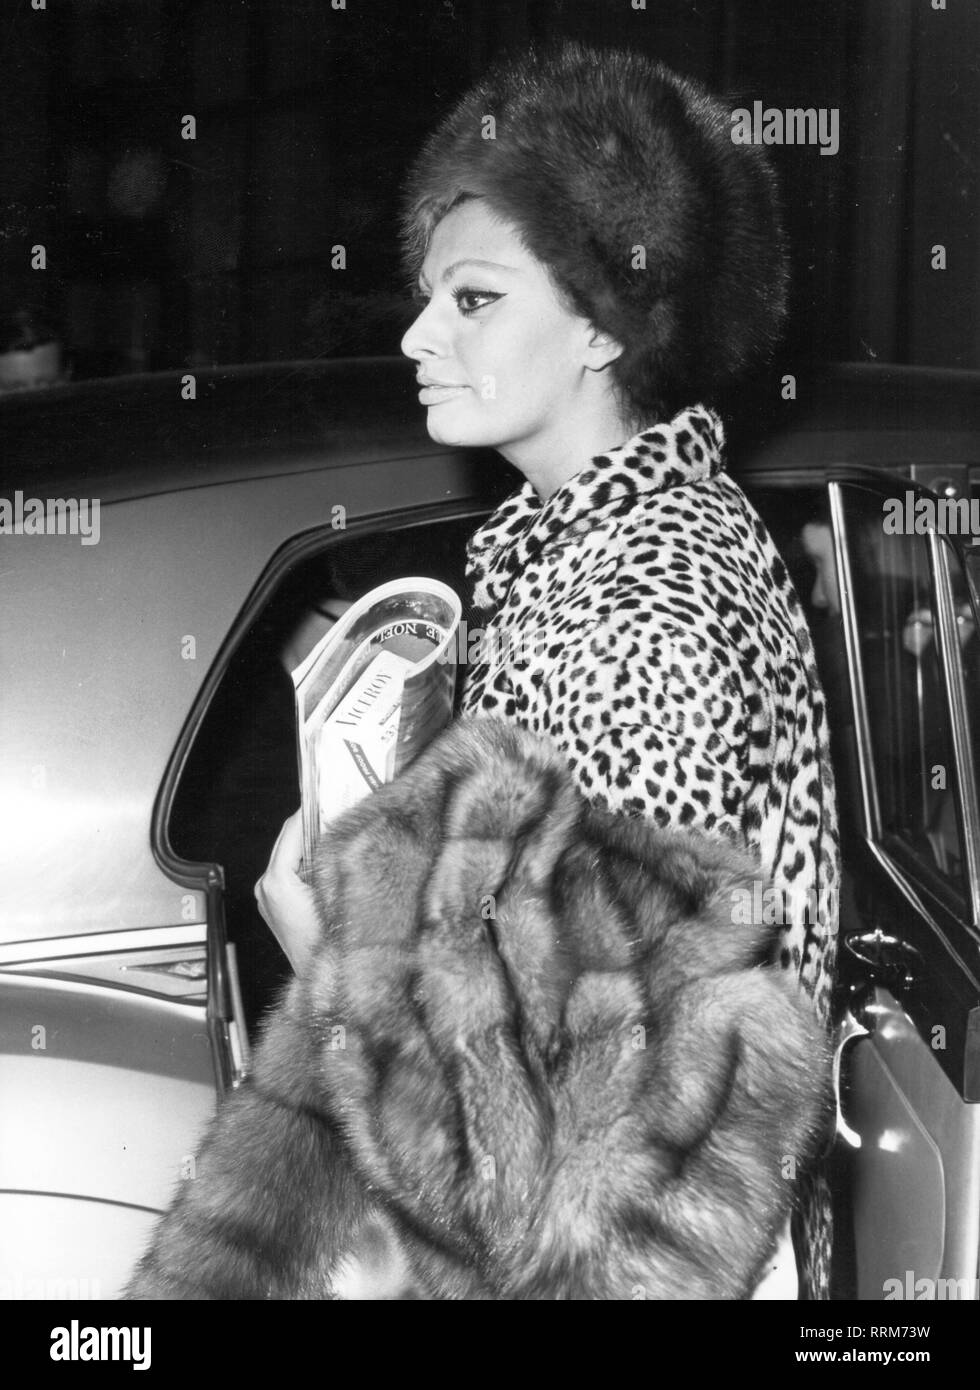 Loren, Sophia, * 20.9.1934, Italian actress, half length, leaving the car, early 1970s, Additional-Rights-Clearance-Info-Not-Available - Stock Image